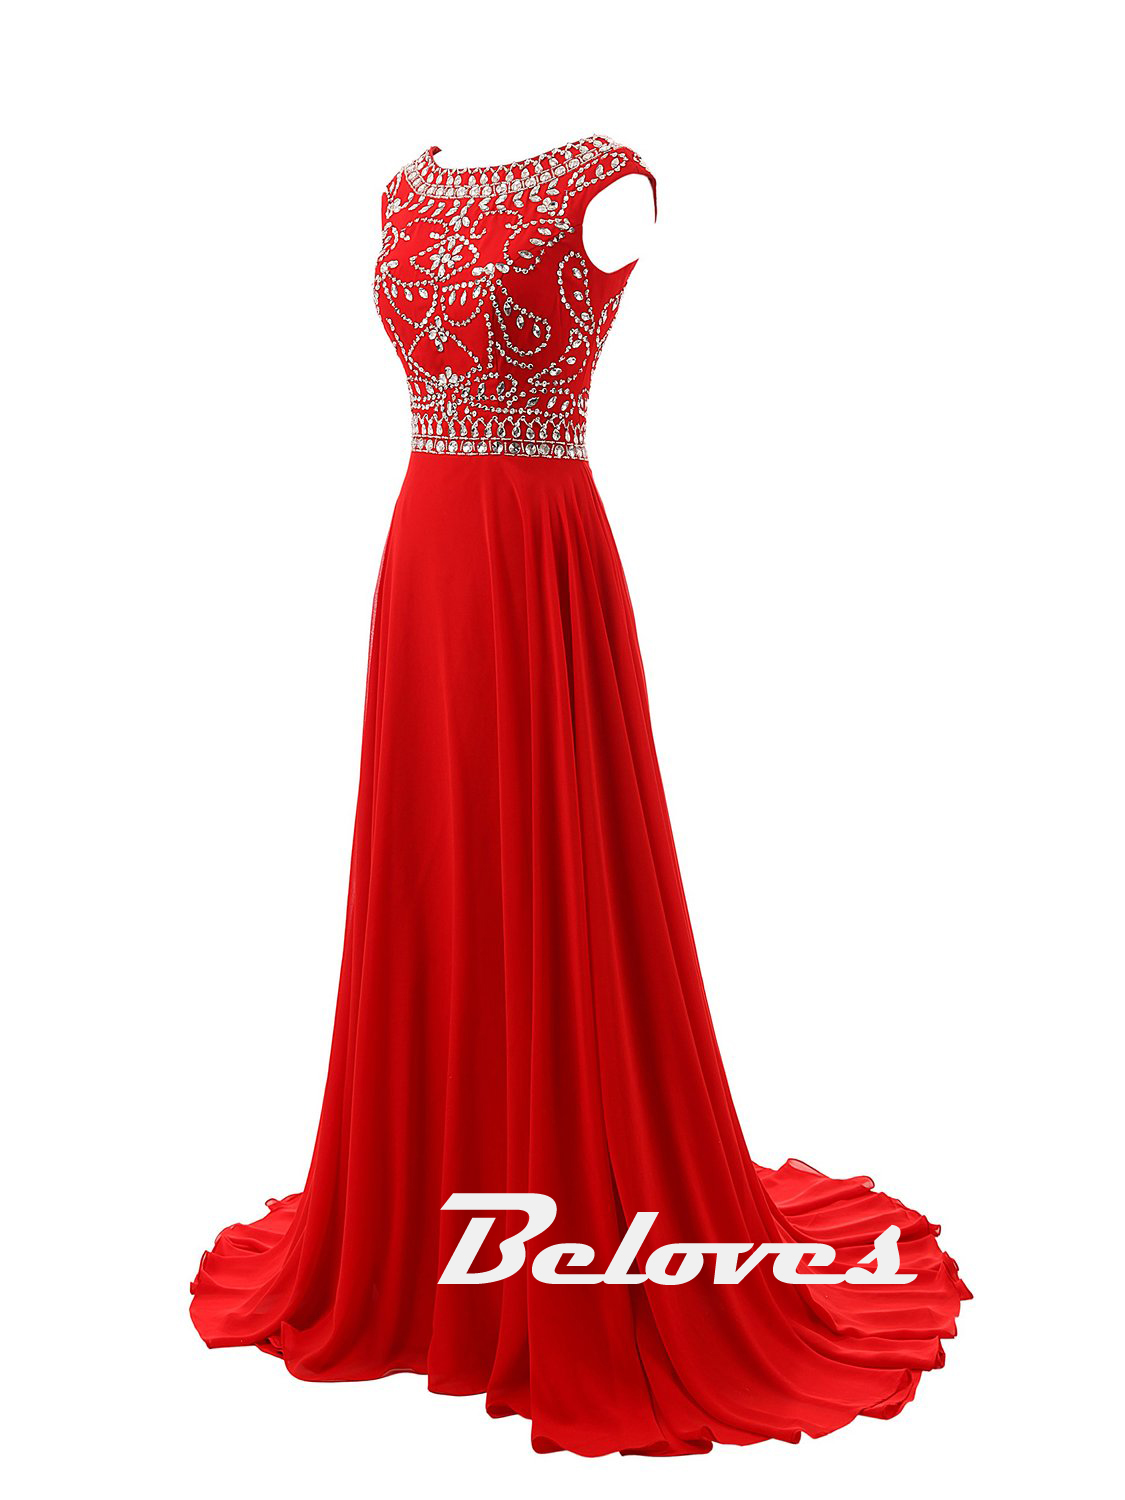 Red Cap Sleeves Beaded Long Gown With Boat Neckline · Beloves ...